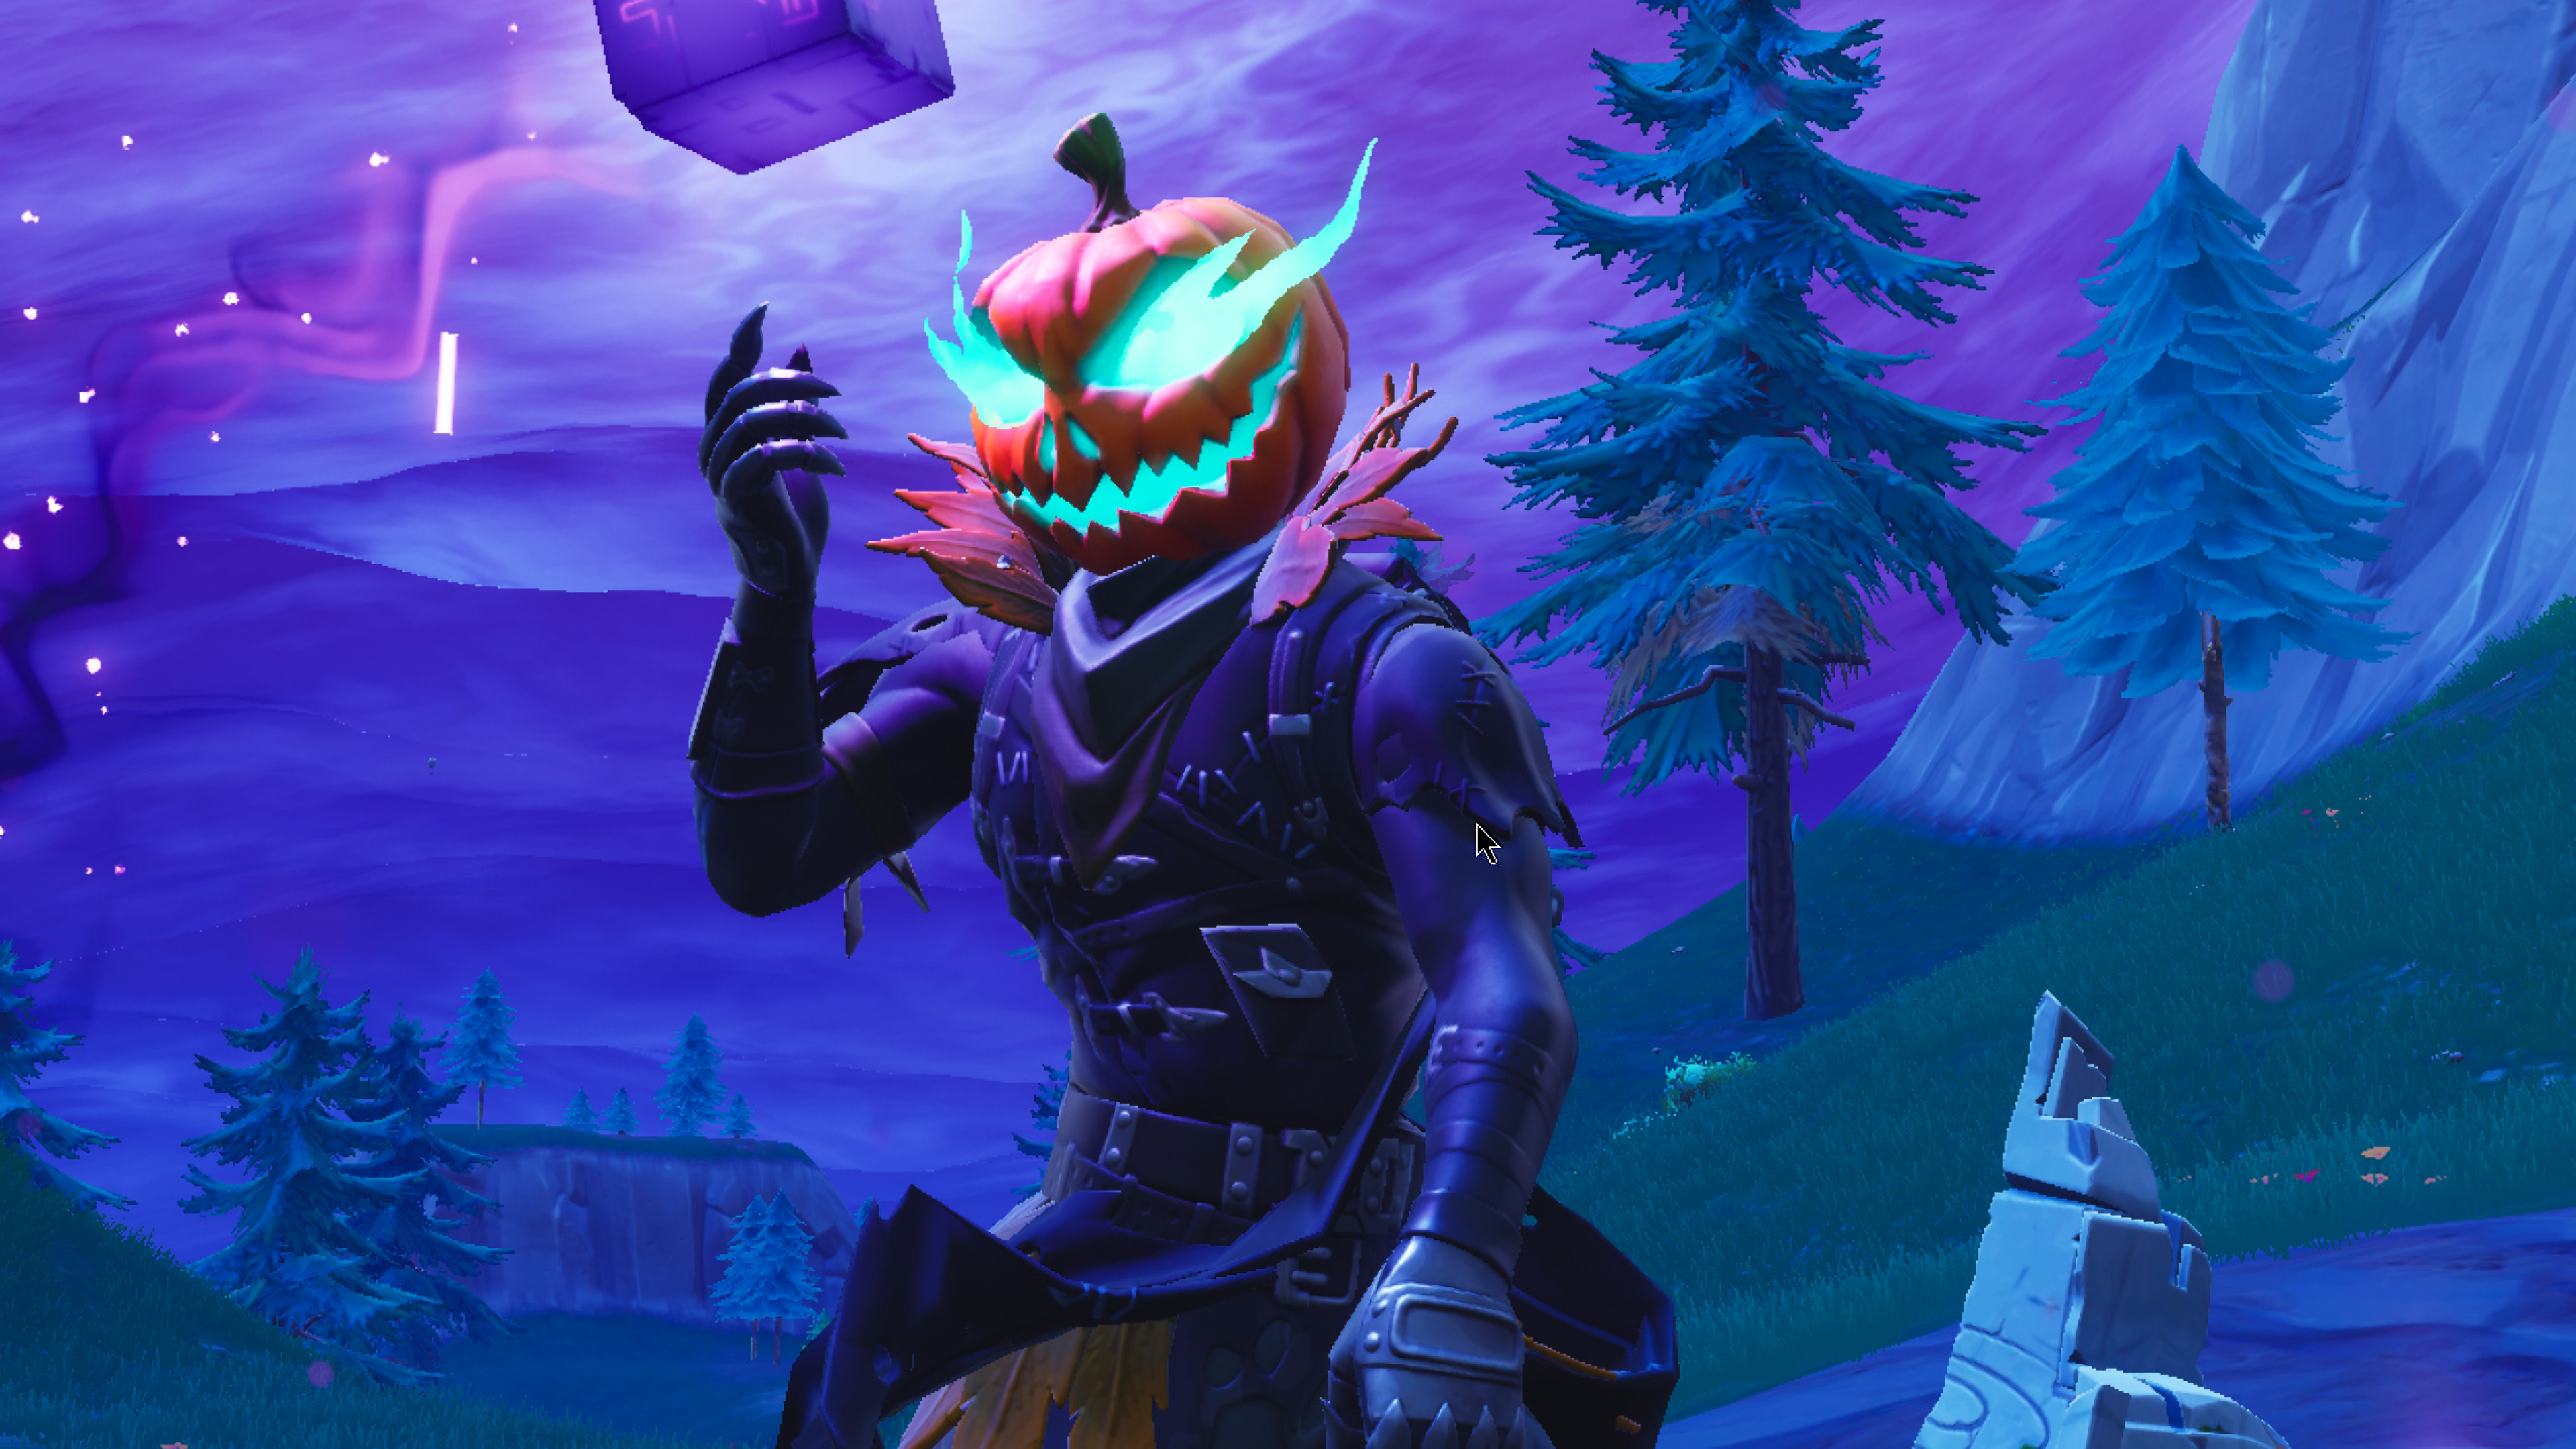 Hollowhead fortnite battle royale 4k hd games 4k - 4k fortnite wallpaper ...